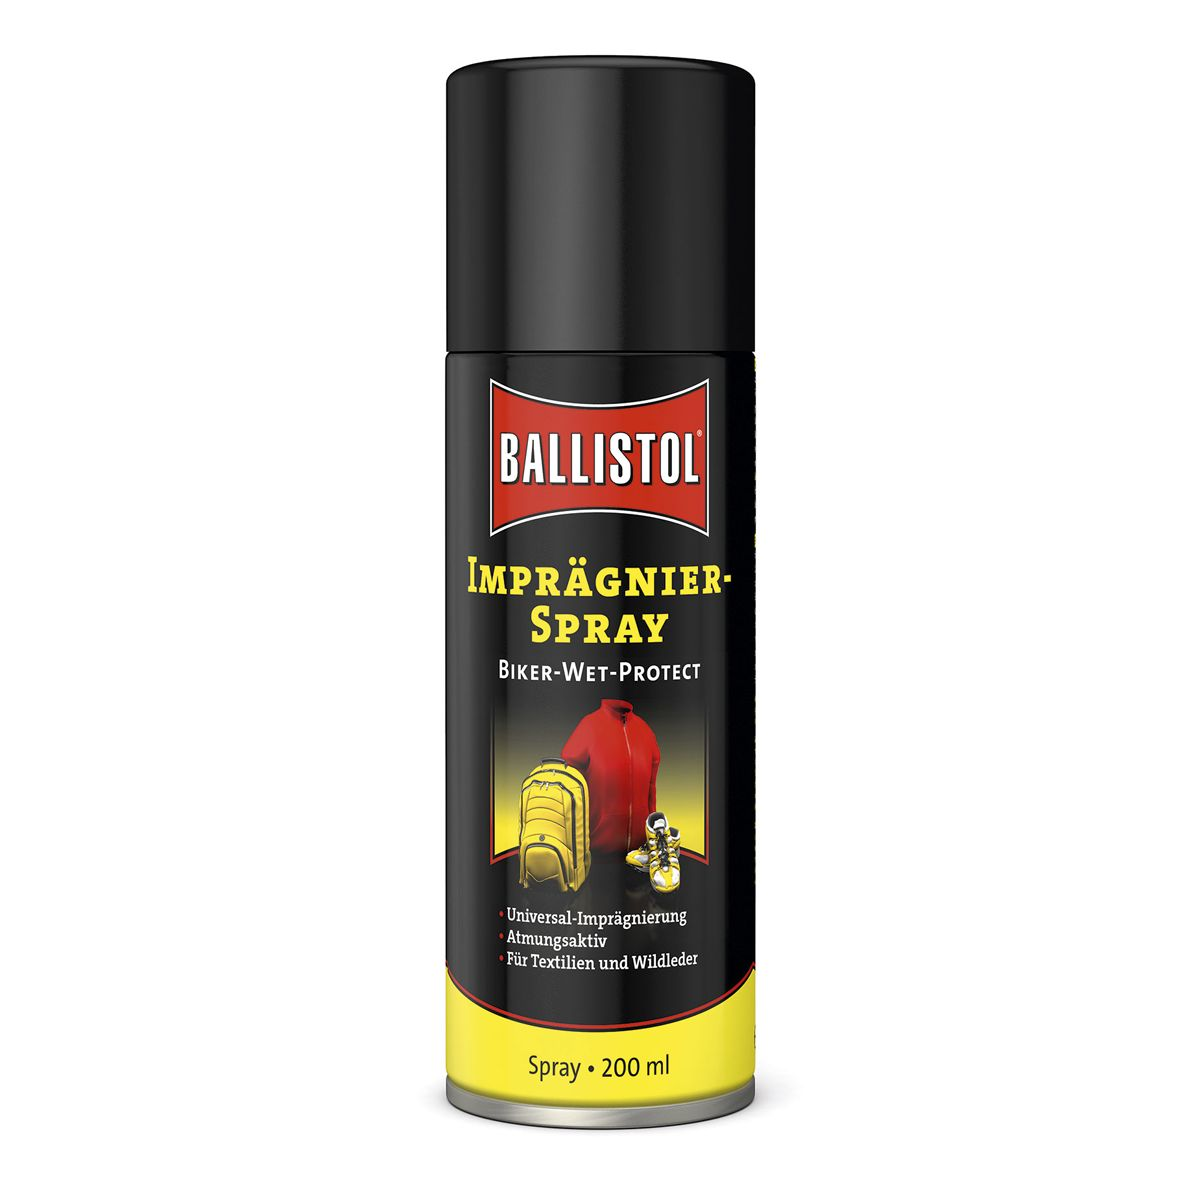 Biker-Wet-Protect waterproofing spray